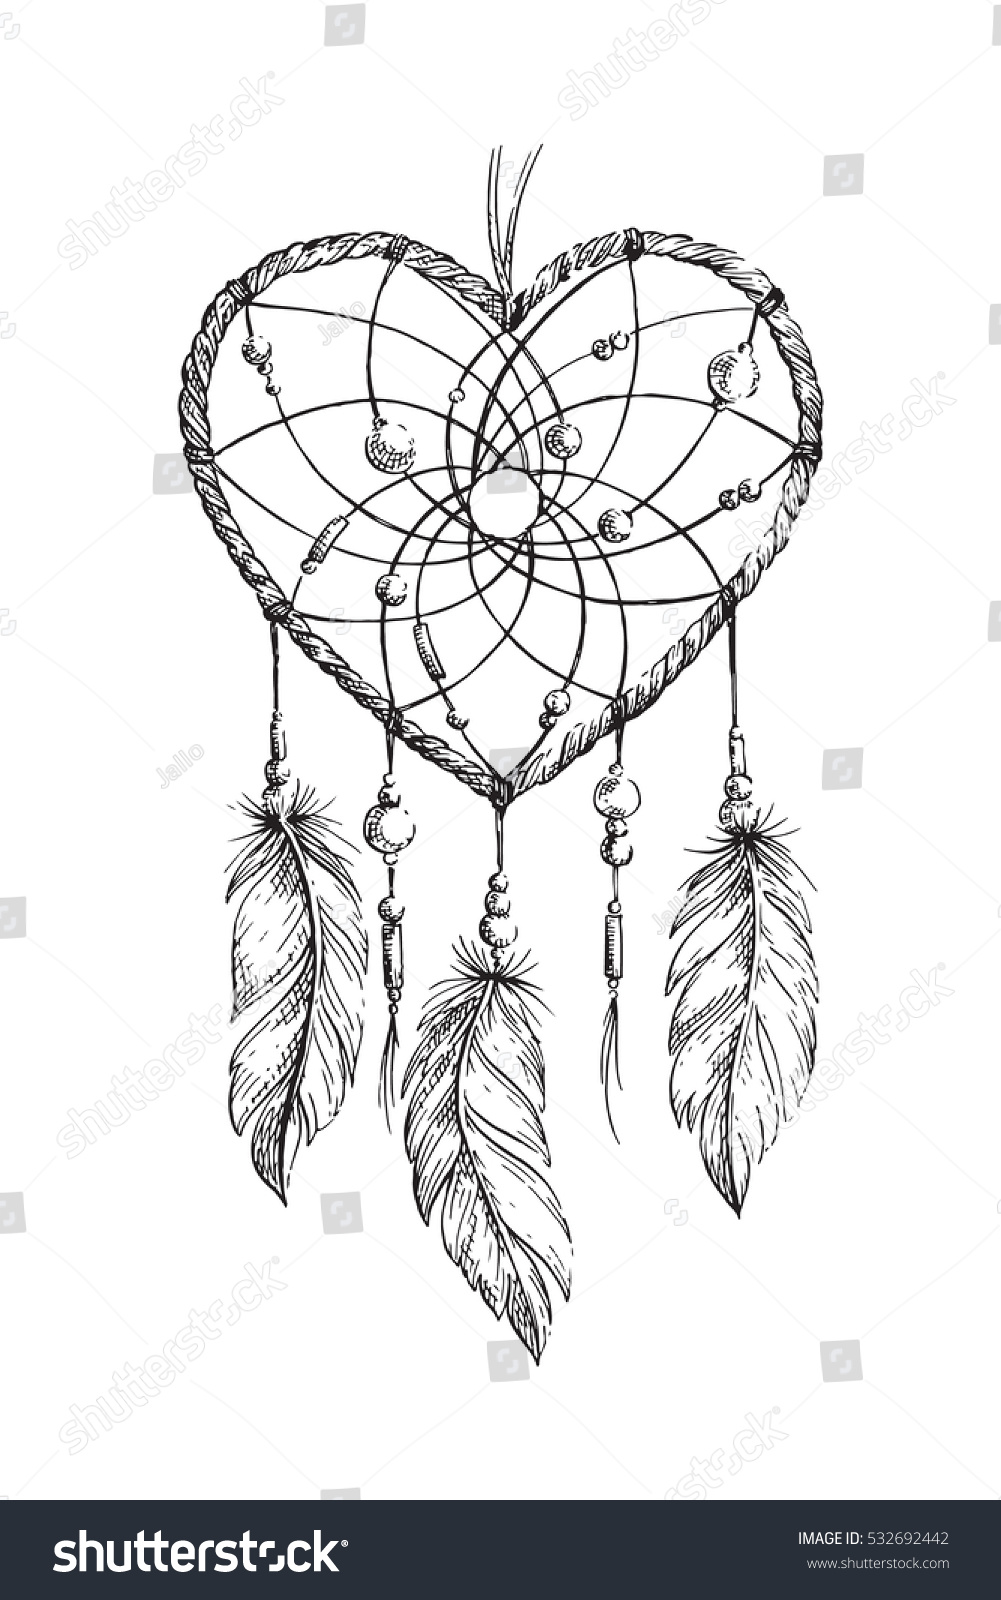 Dream Catcher Coloring Pages New Picture Dream Catcher Coloring Pagesdream Catcher Coloring